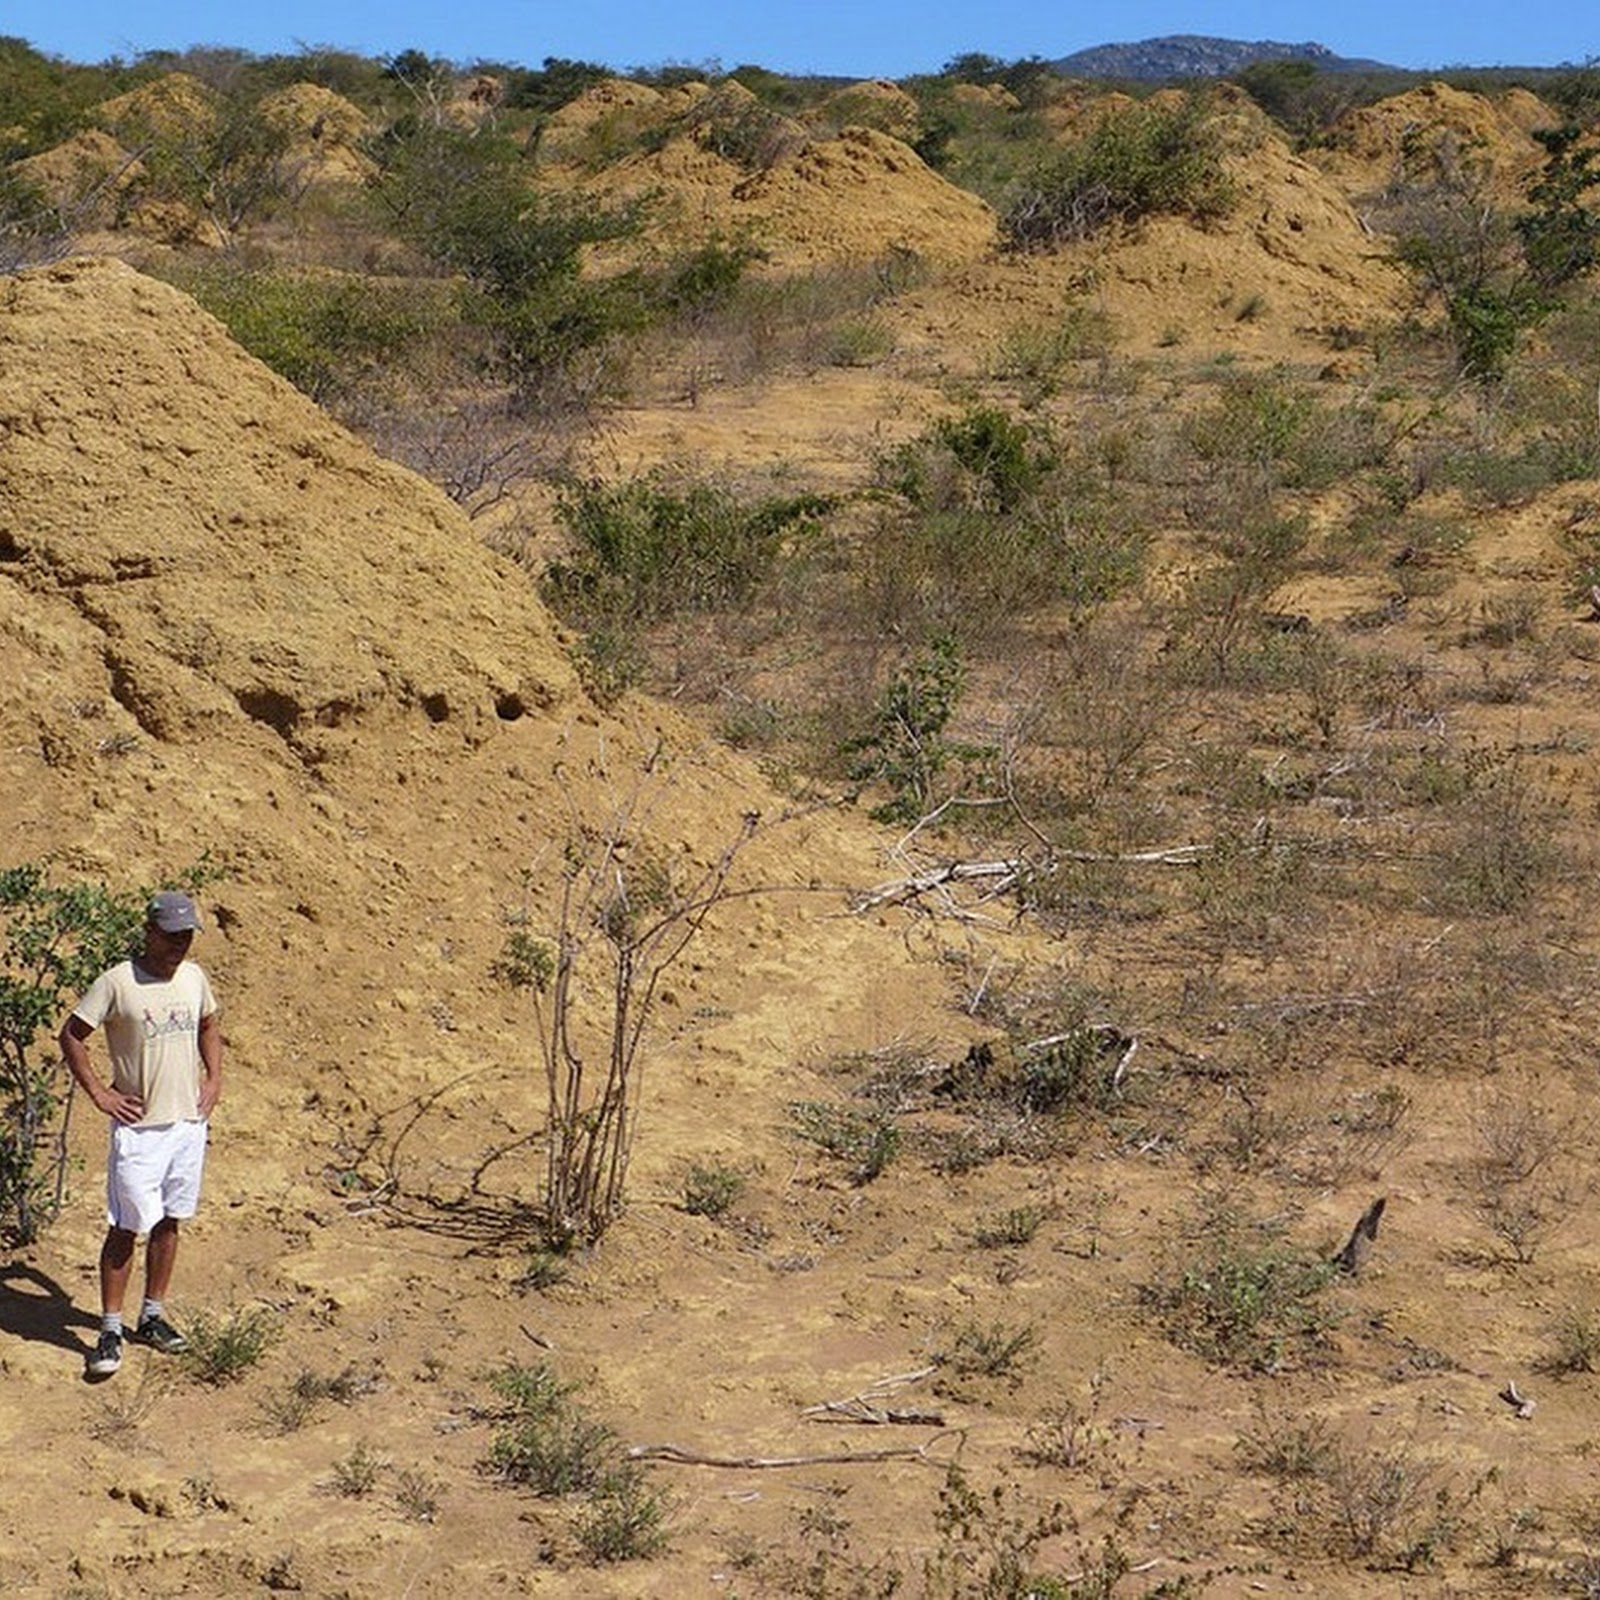 The 4,000-Year-Old Termite Mounds The Size of Britain